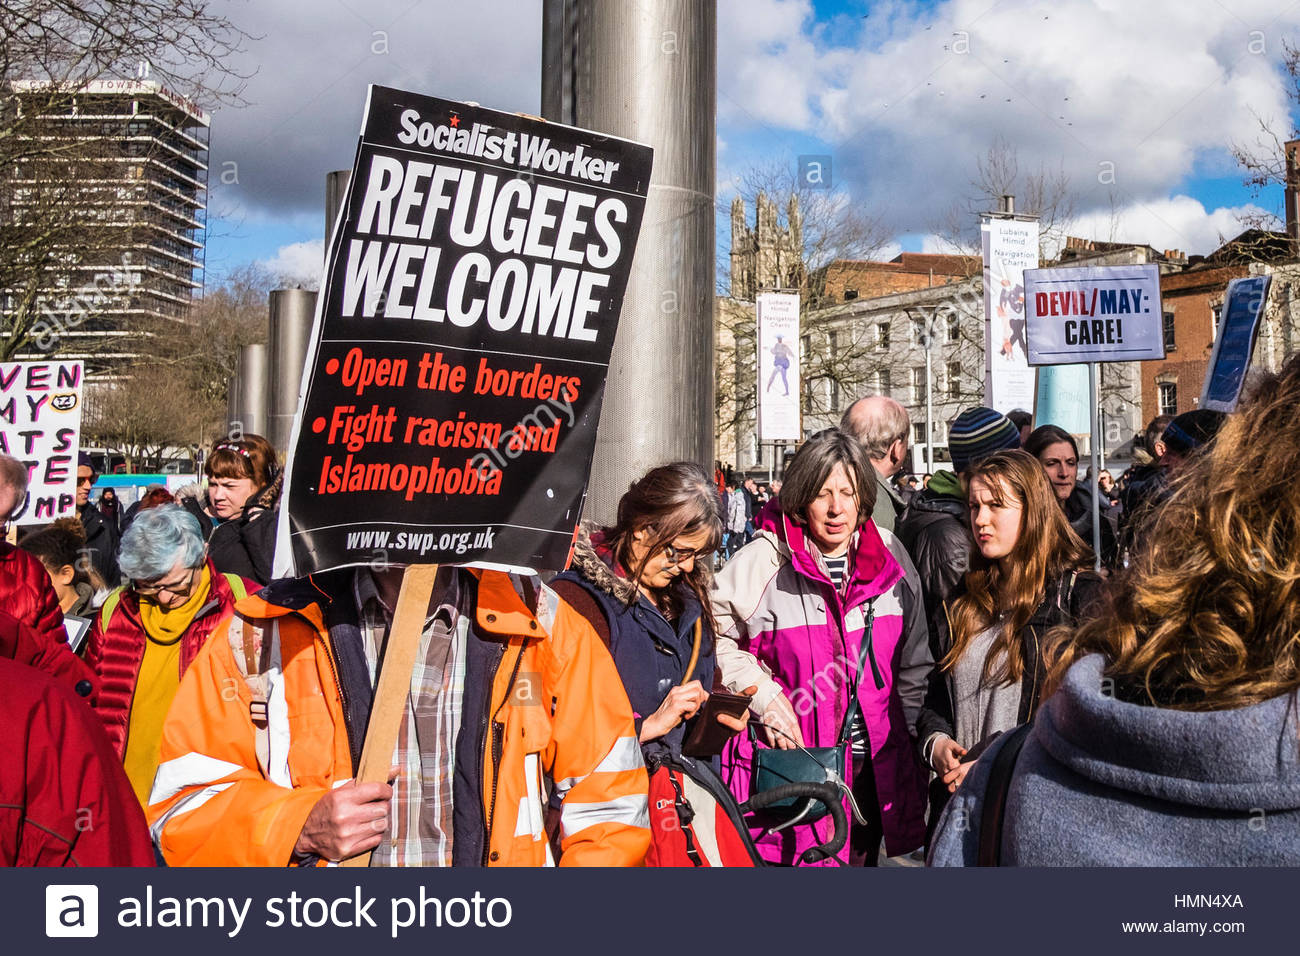 Bristol, UK - 04 February 2017:  Crowds of people wave banners in support of refugees and march through the city - Stock Image